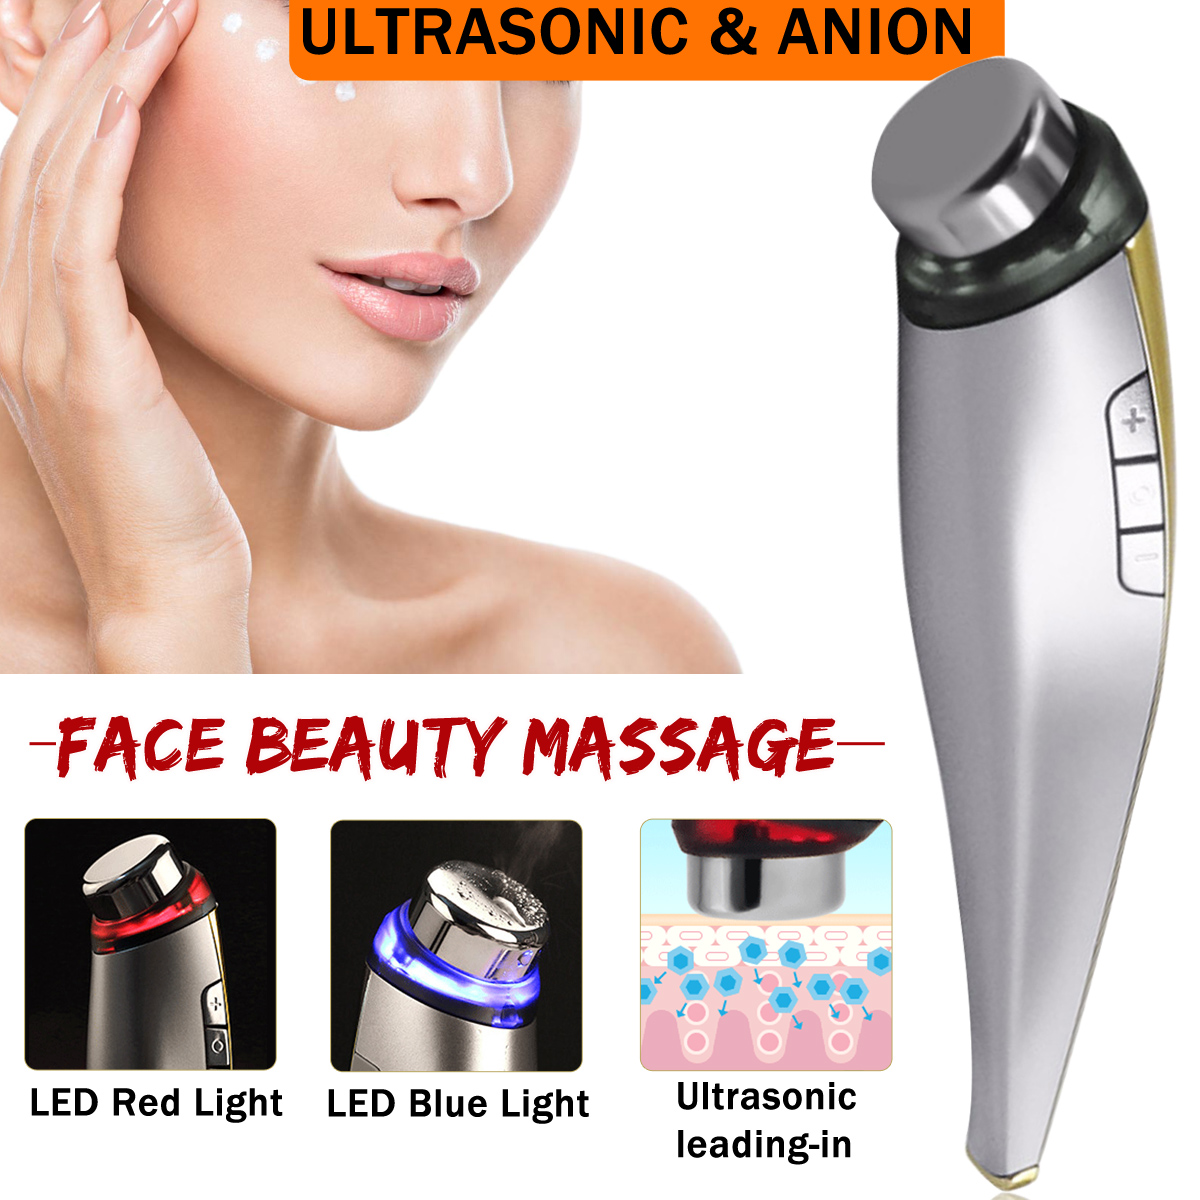 Ultrasonic Lonic Anion LED Light Face Massage Rejuvenation